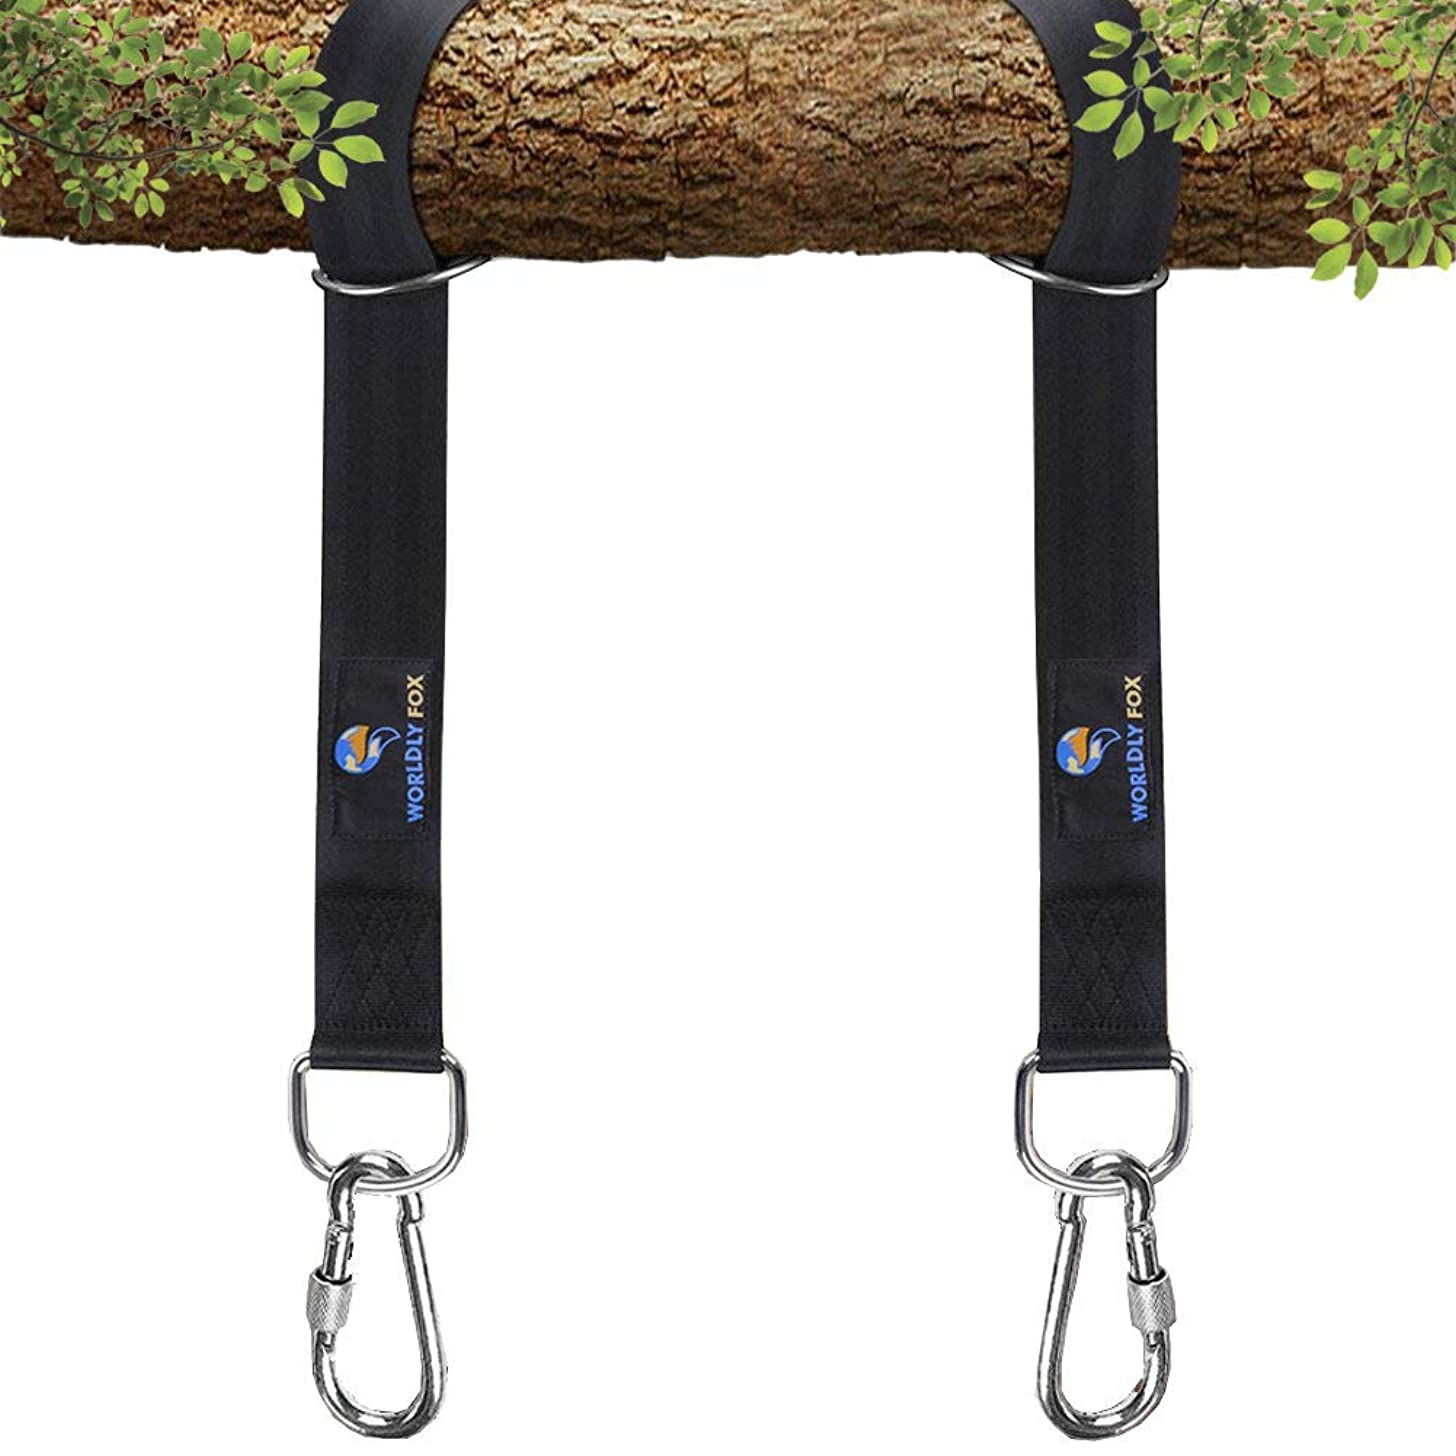 Worldly Fox Hanging Tree Straps for Swings & Hammocks 5ft XL Black Straps with Lock Carabiners - Saves Trees, Adjustable, Easy use & Safe with Heavy Duty 2200lbs Hold, Portable Carry Bag Included